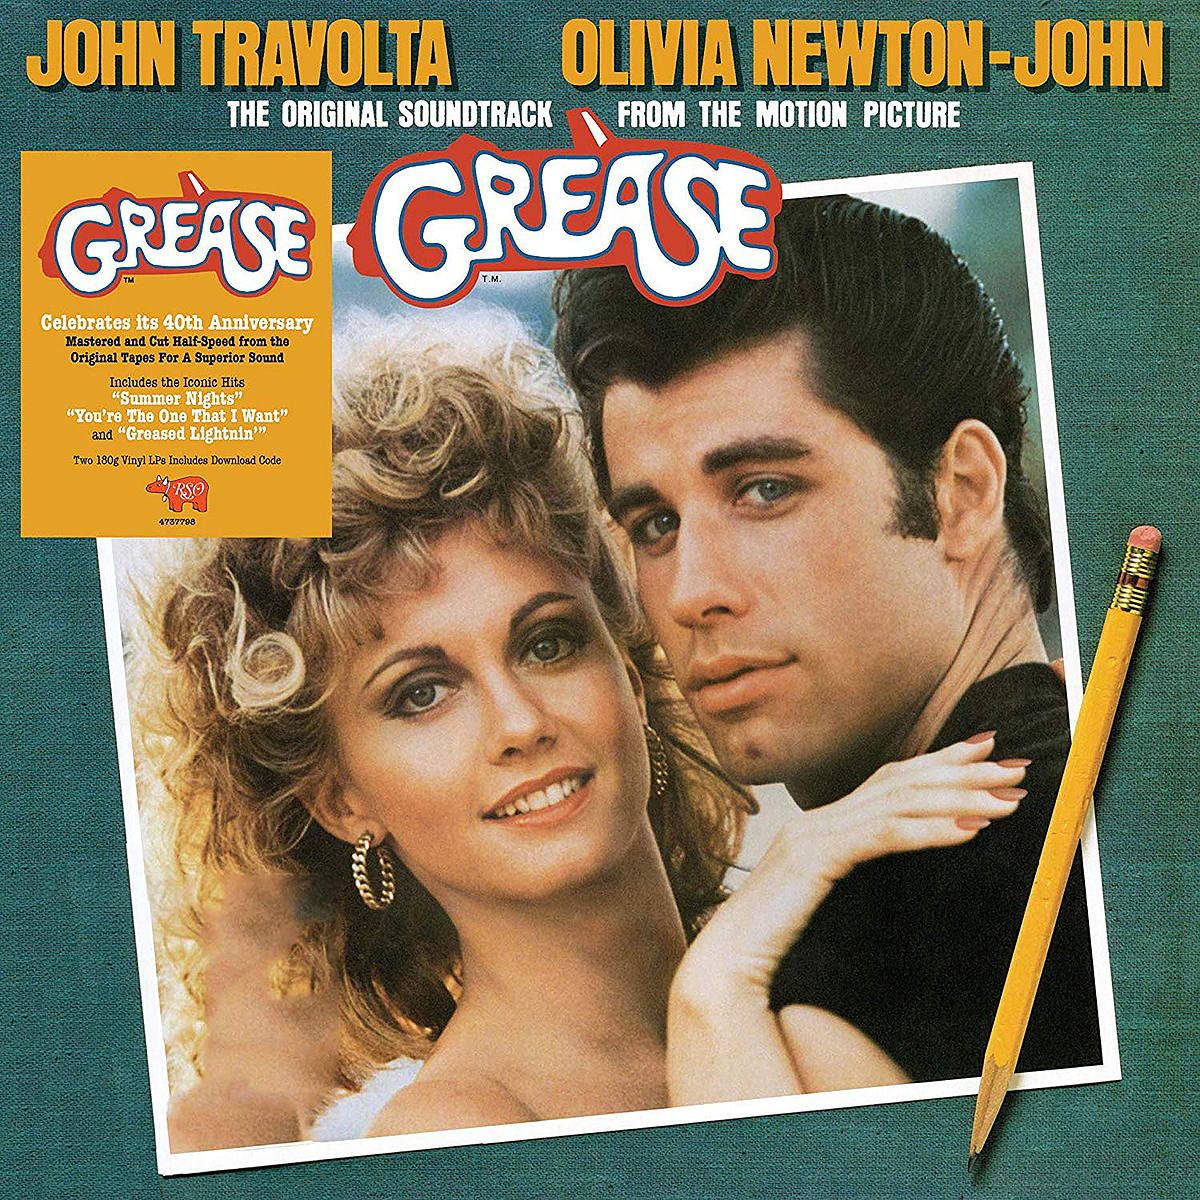 Grease. Original Motion Picture Soundtrack (2 LP) butch tavares adi armour the o jays brawl in cell block 99 original motion picture soundtrack lp